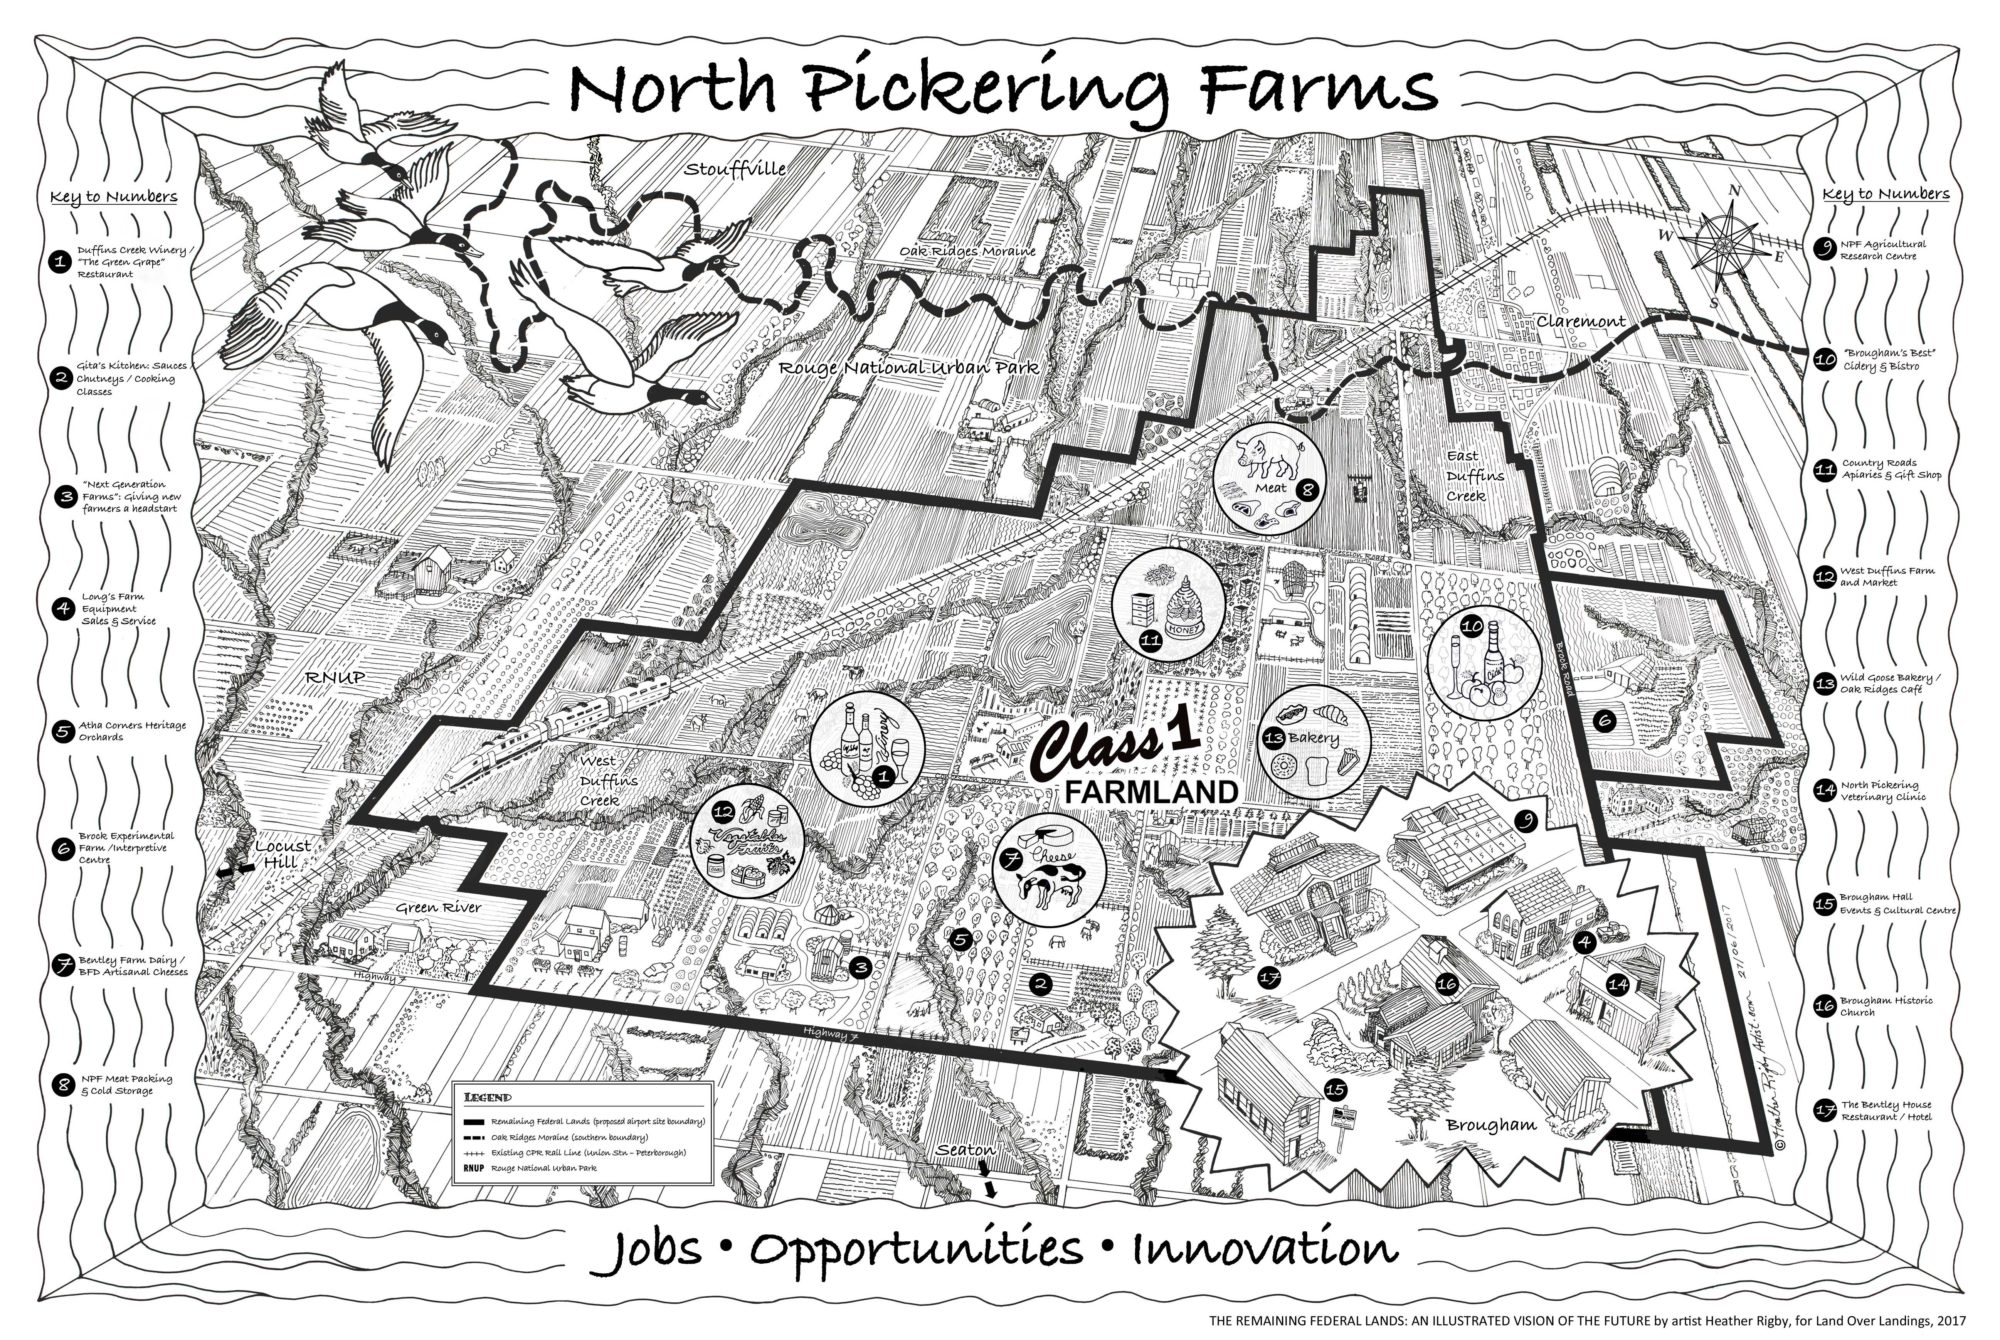 Drawing of North Pickering Farms map